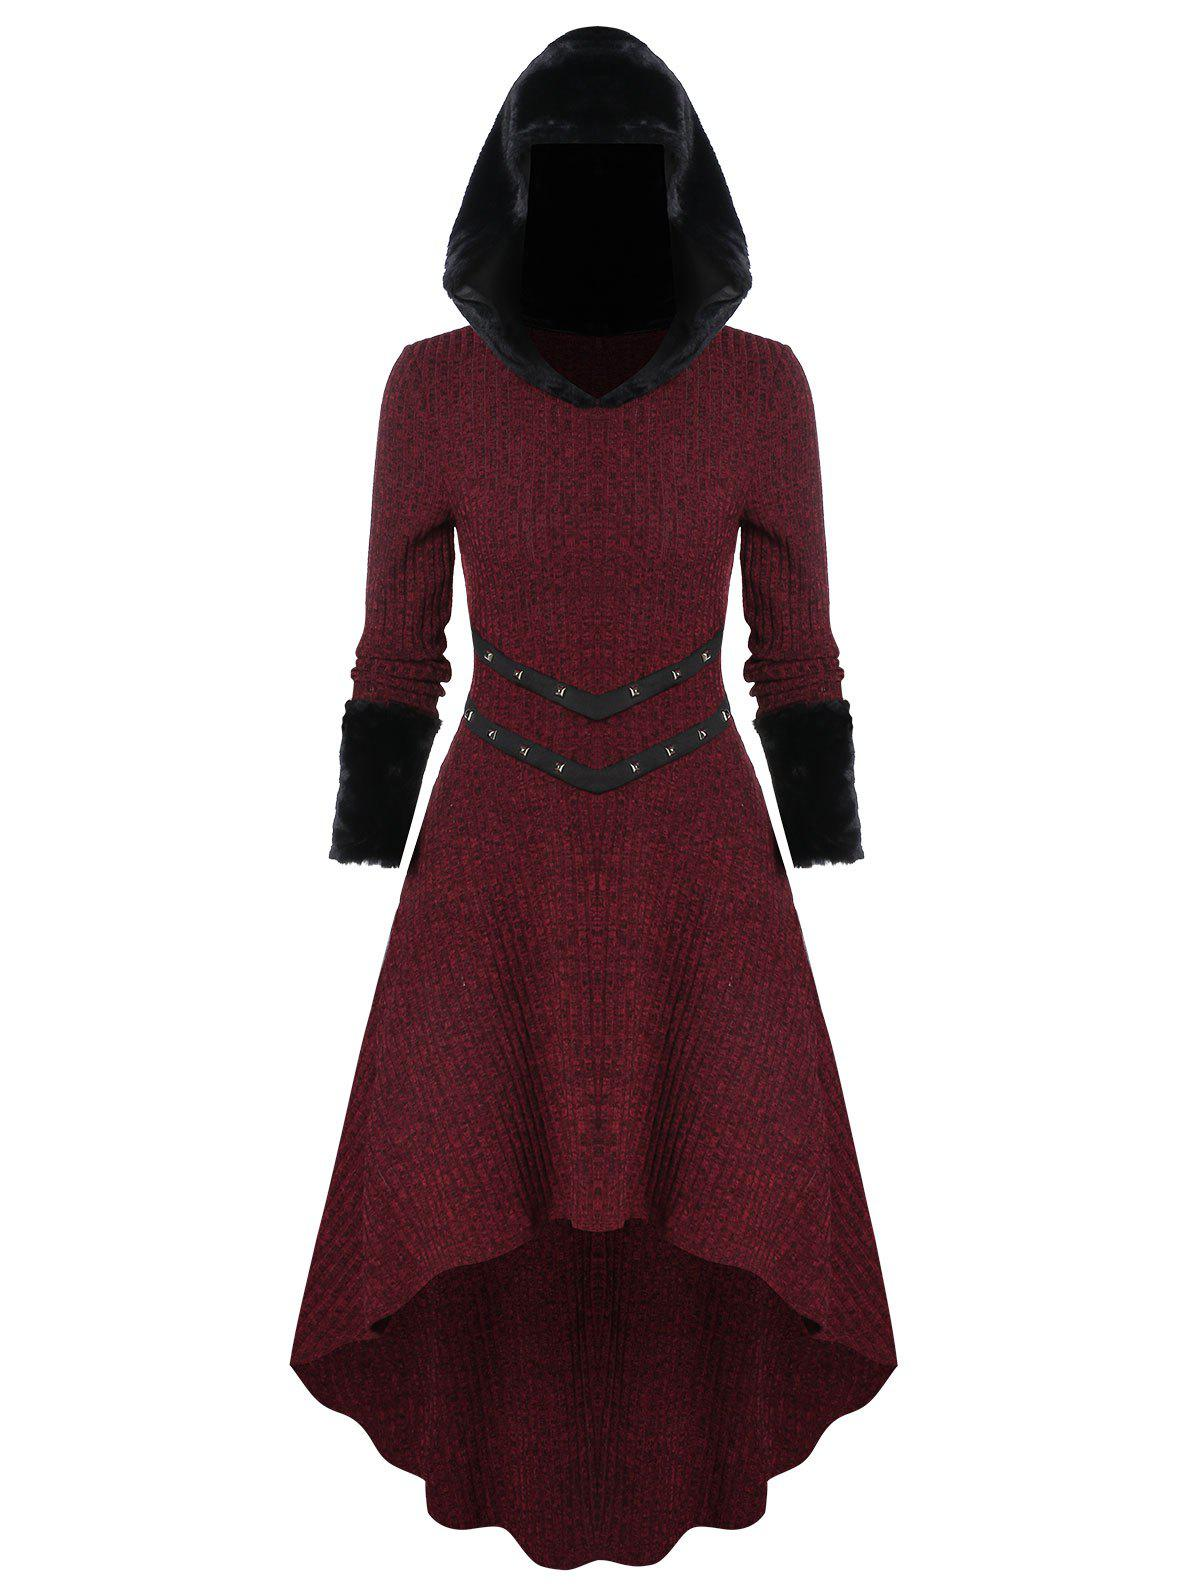 New Knitted Furry Sleeve Hooded Dress